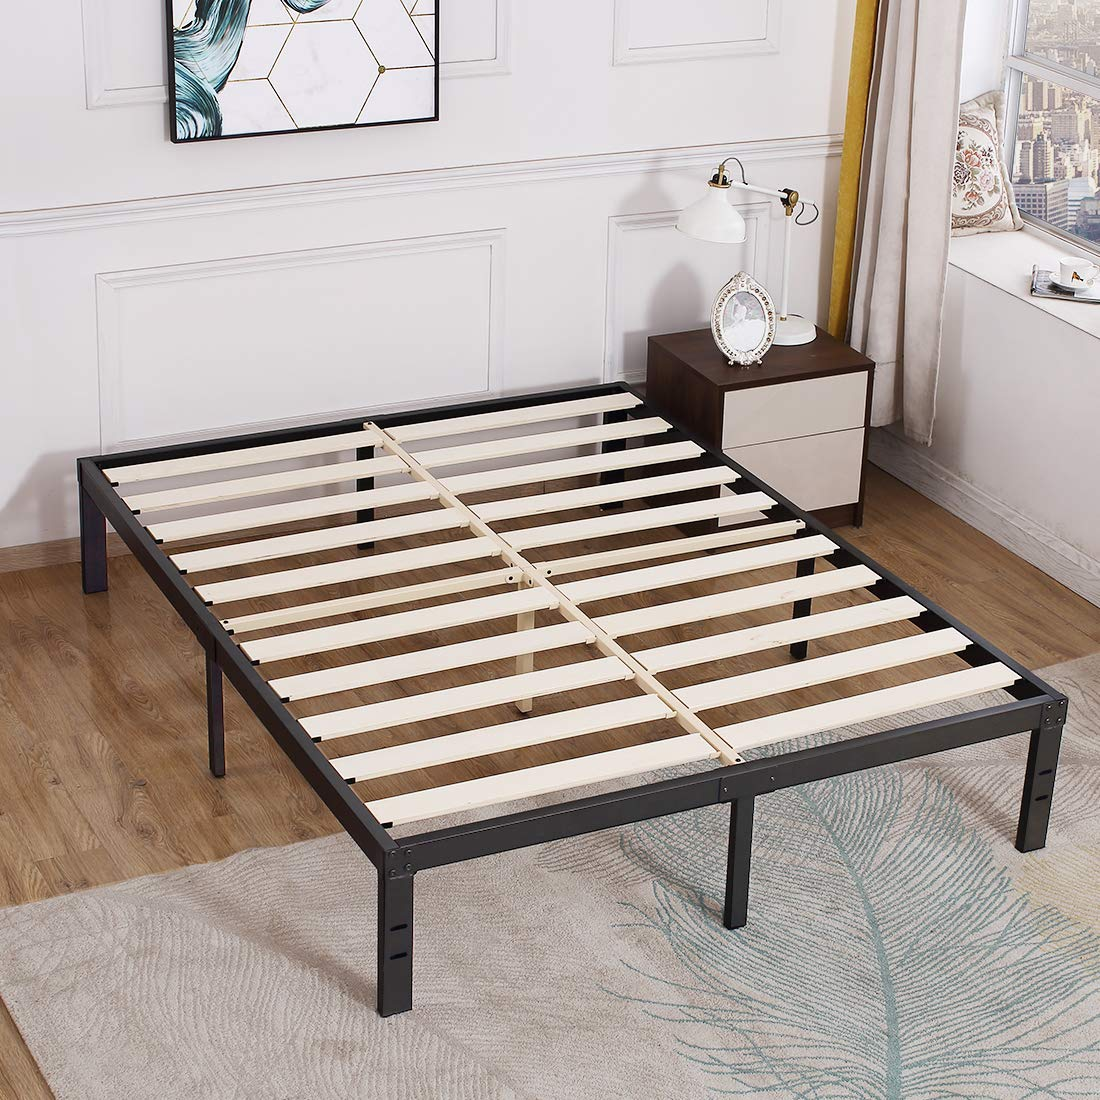 Tatago 3500lbs Upgraded Heavy Duty Wooden Slats Platform Bed Frame 14 Inch Tall Mattress Foundation Extra Strong Support No Noise No Box Spring Needed Queen Walmart Com Walmart Com